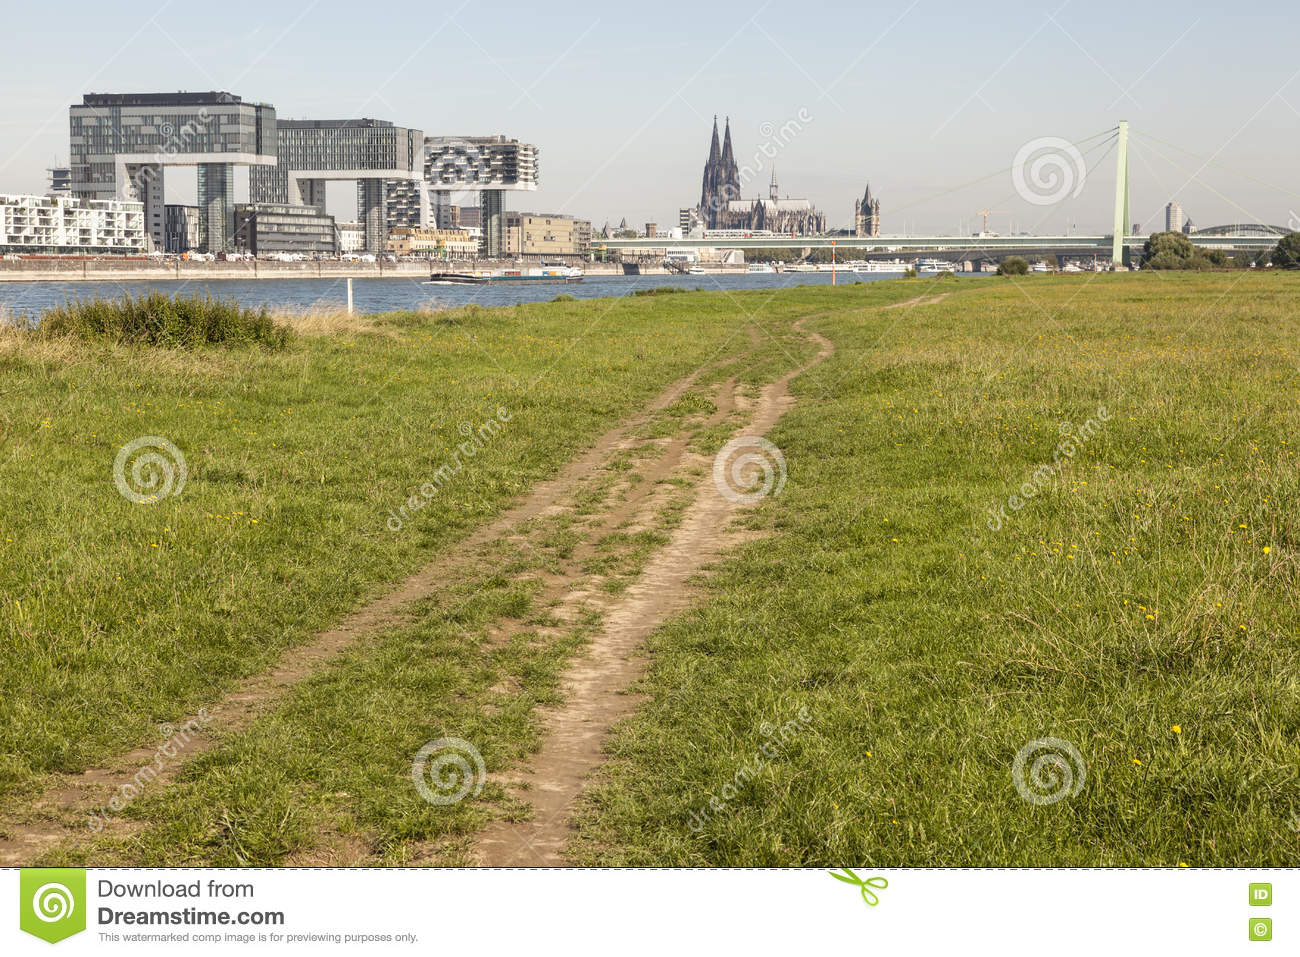 Meadow on the Rhine river bank in Cologne, Germany